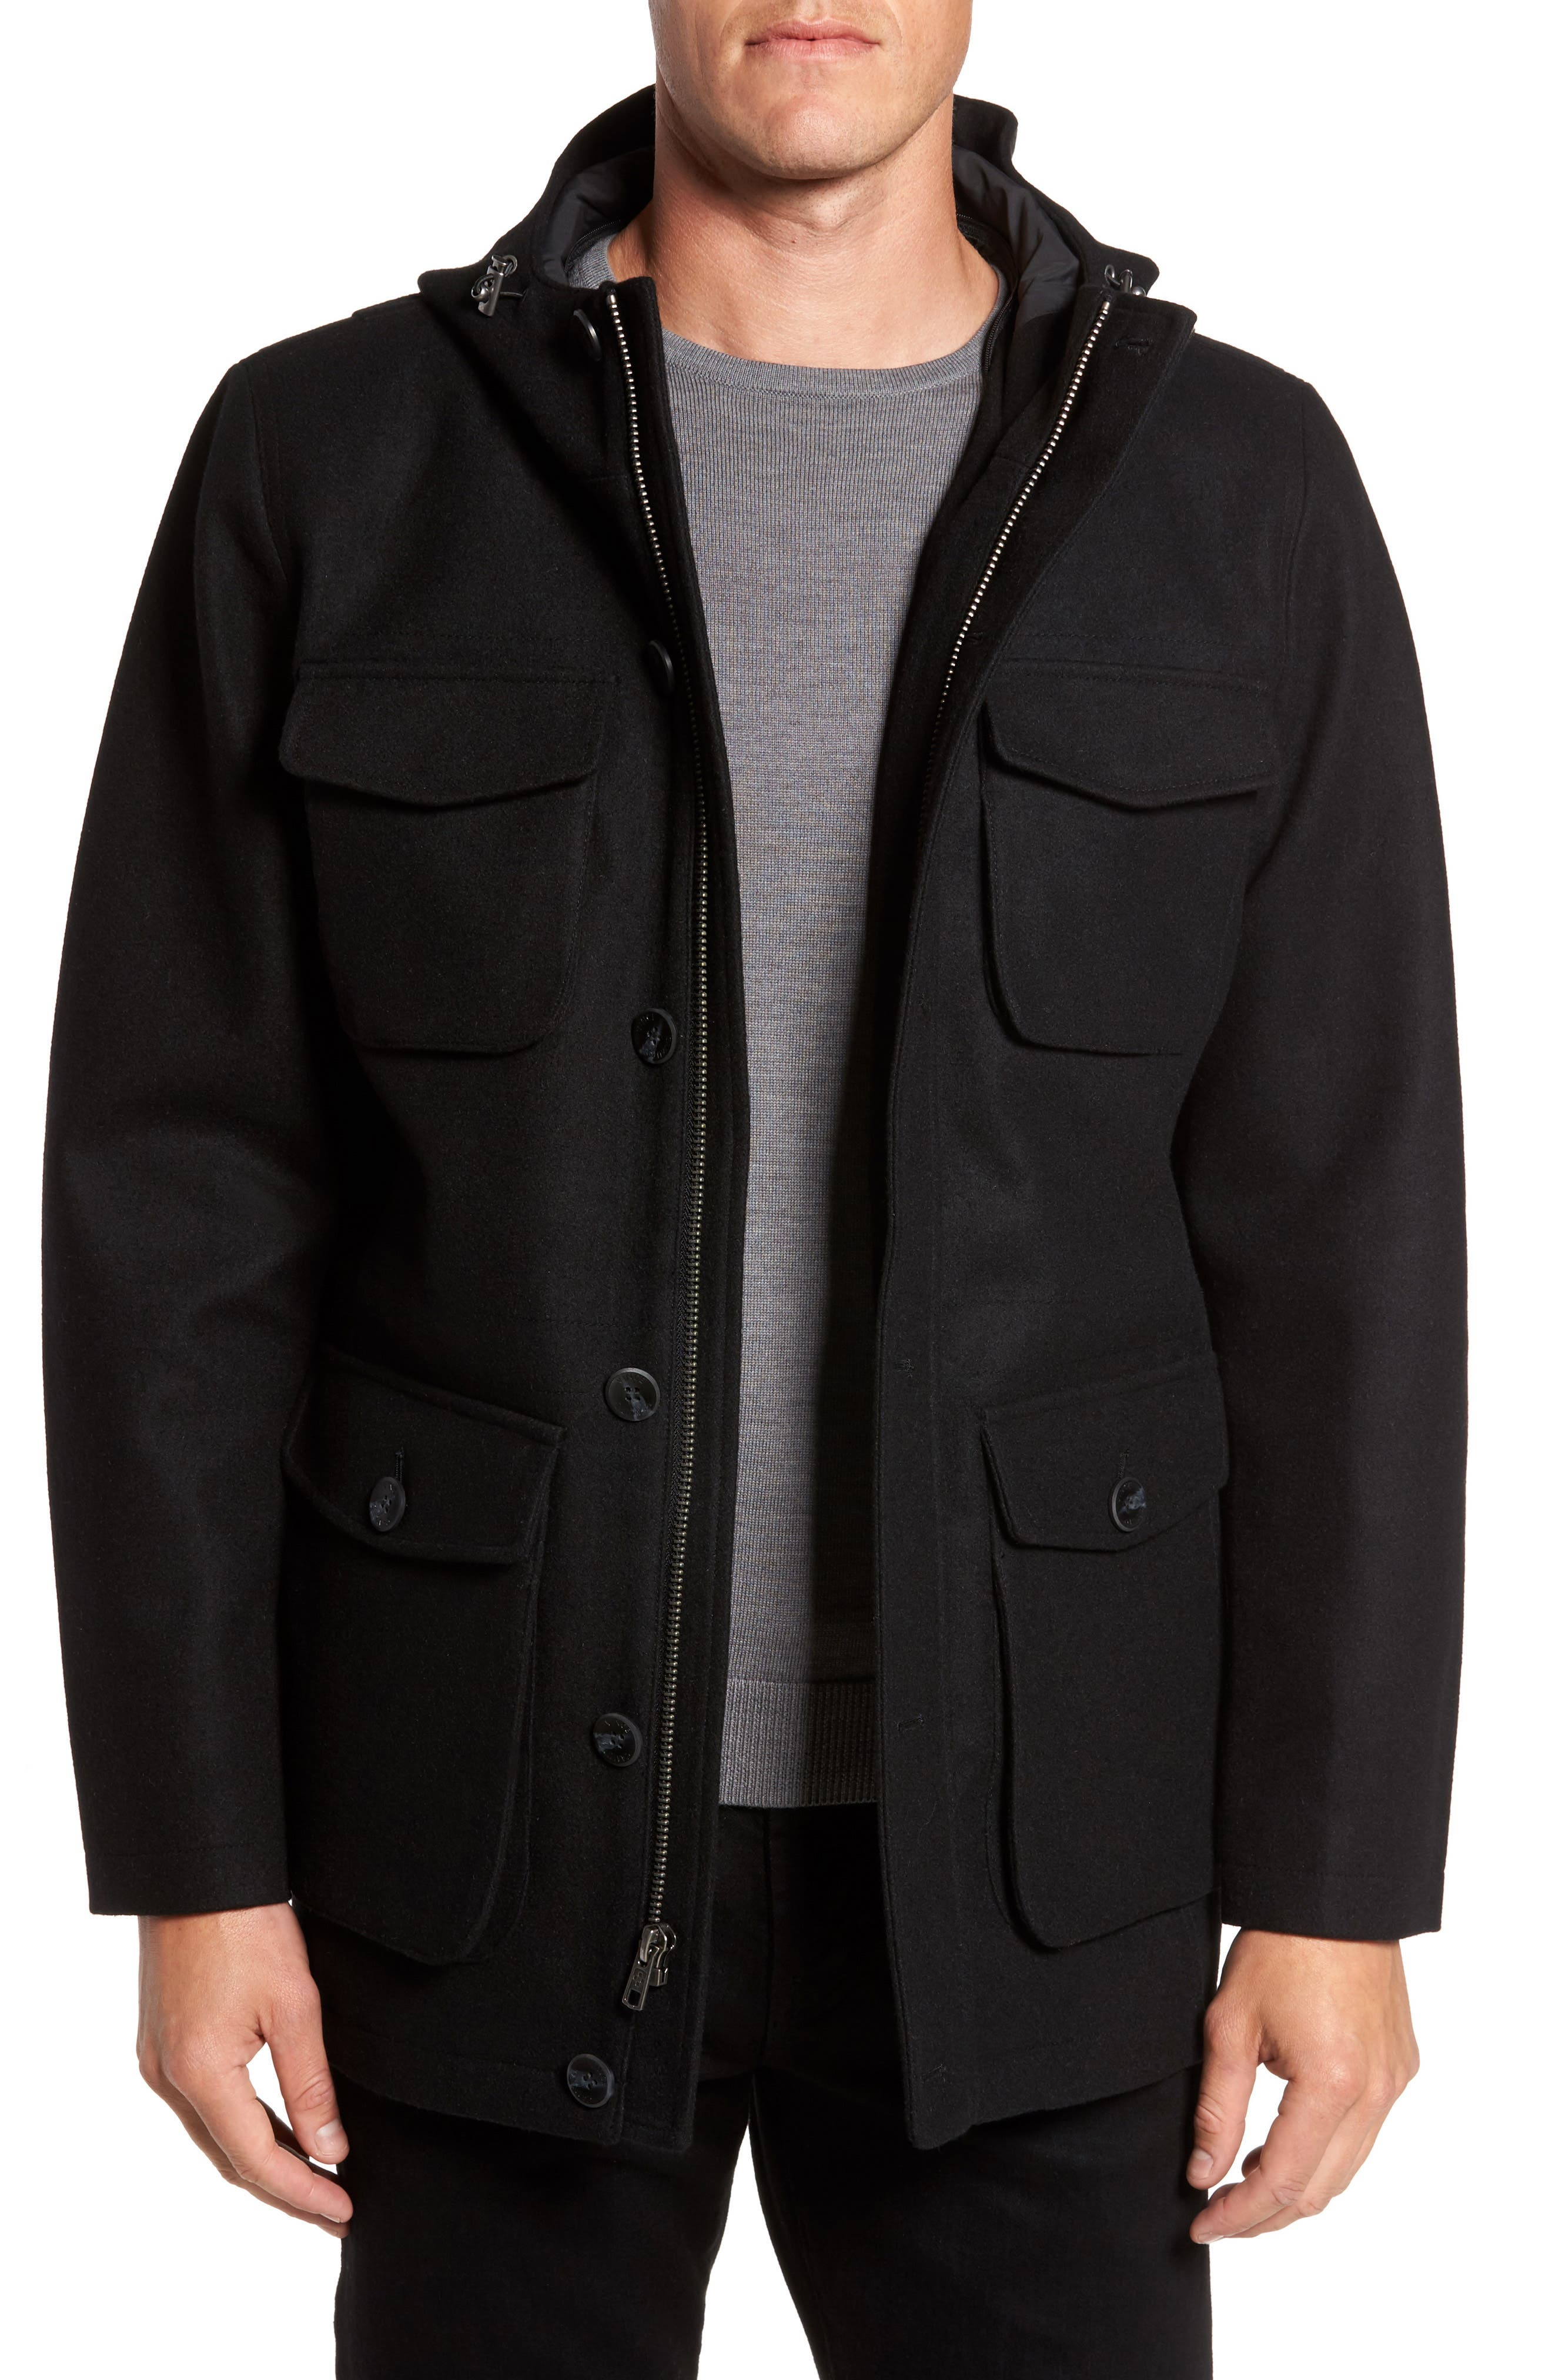 Hooded Jacket with Removable Bib,                             Alternate thumbnail 4, color,                             001